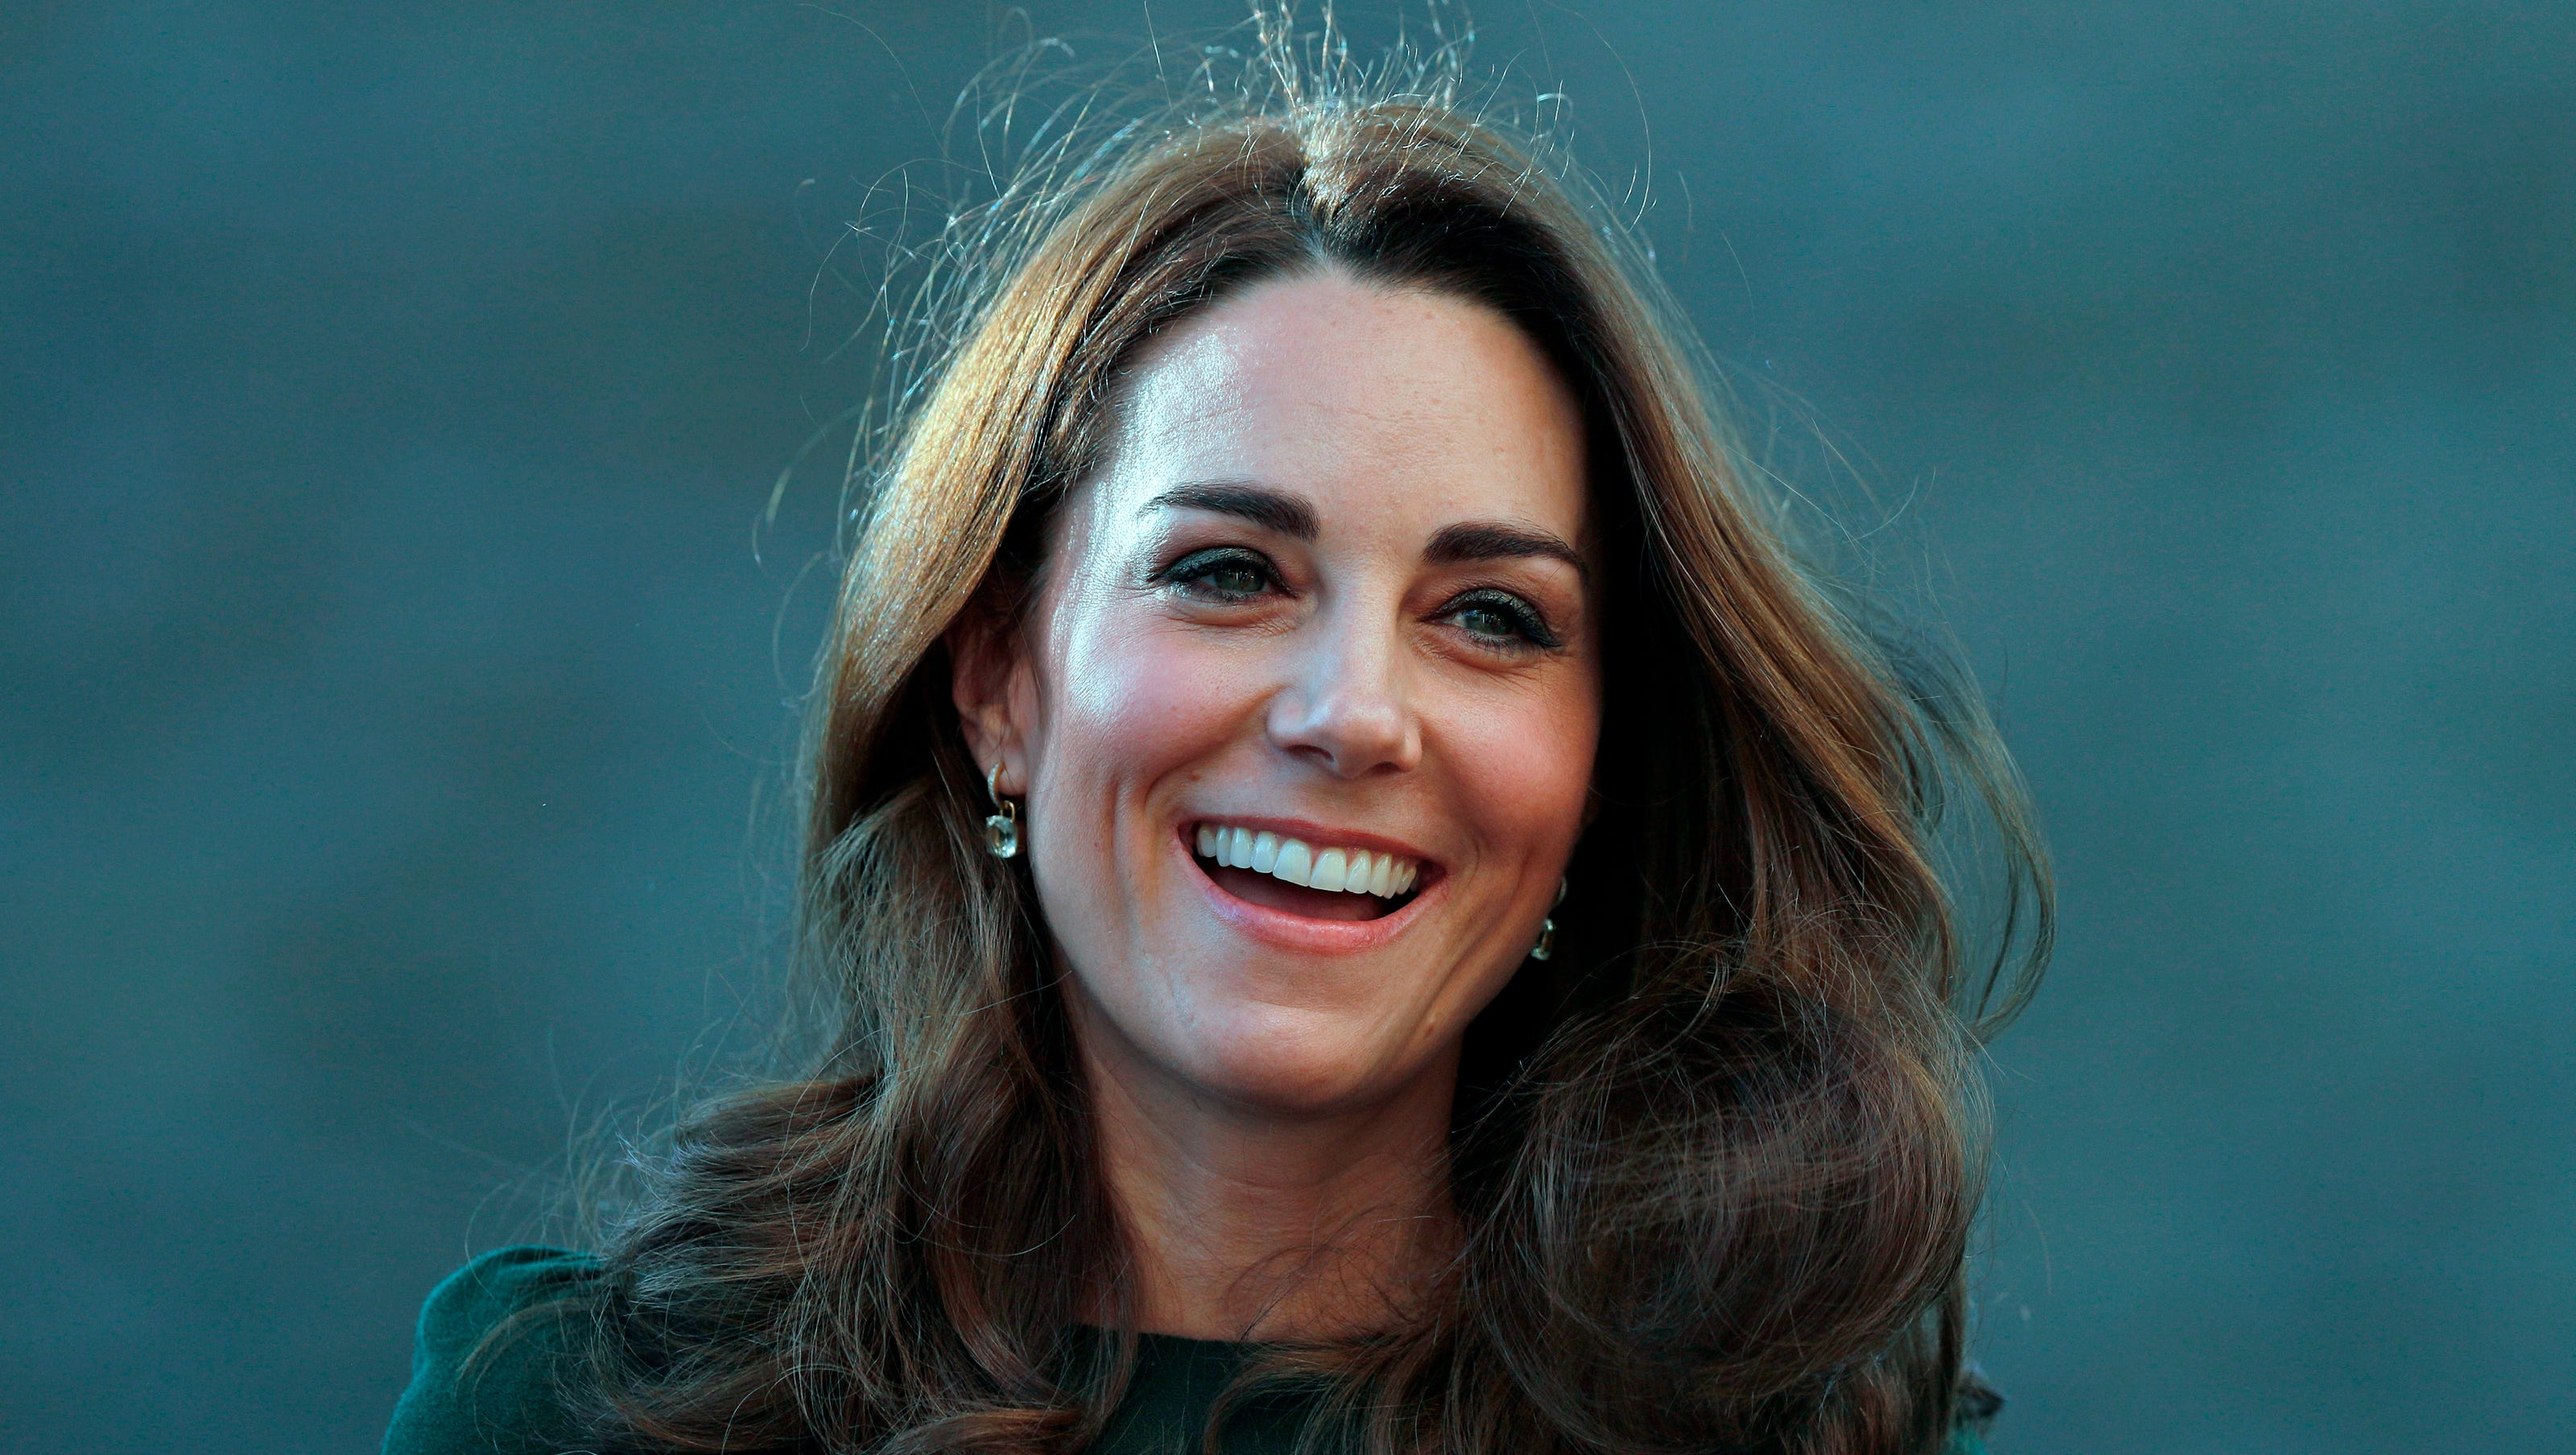 'It's so hard:' Kate Middleton knows the parenting struggle is real